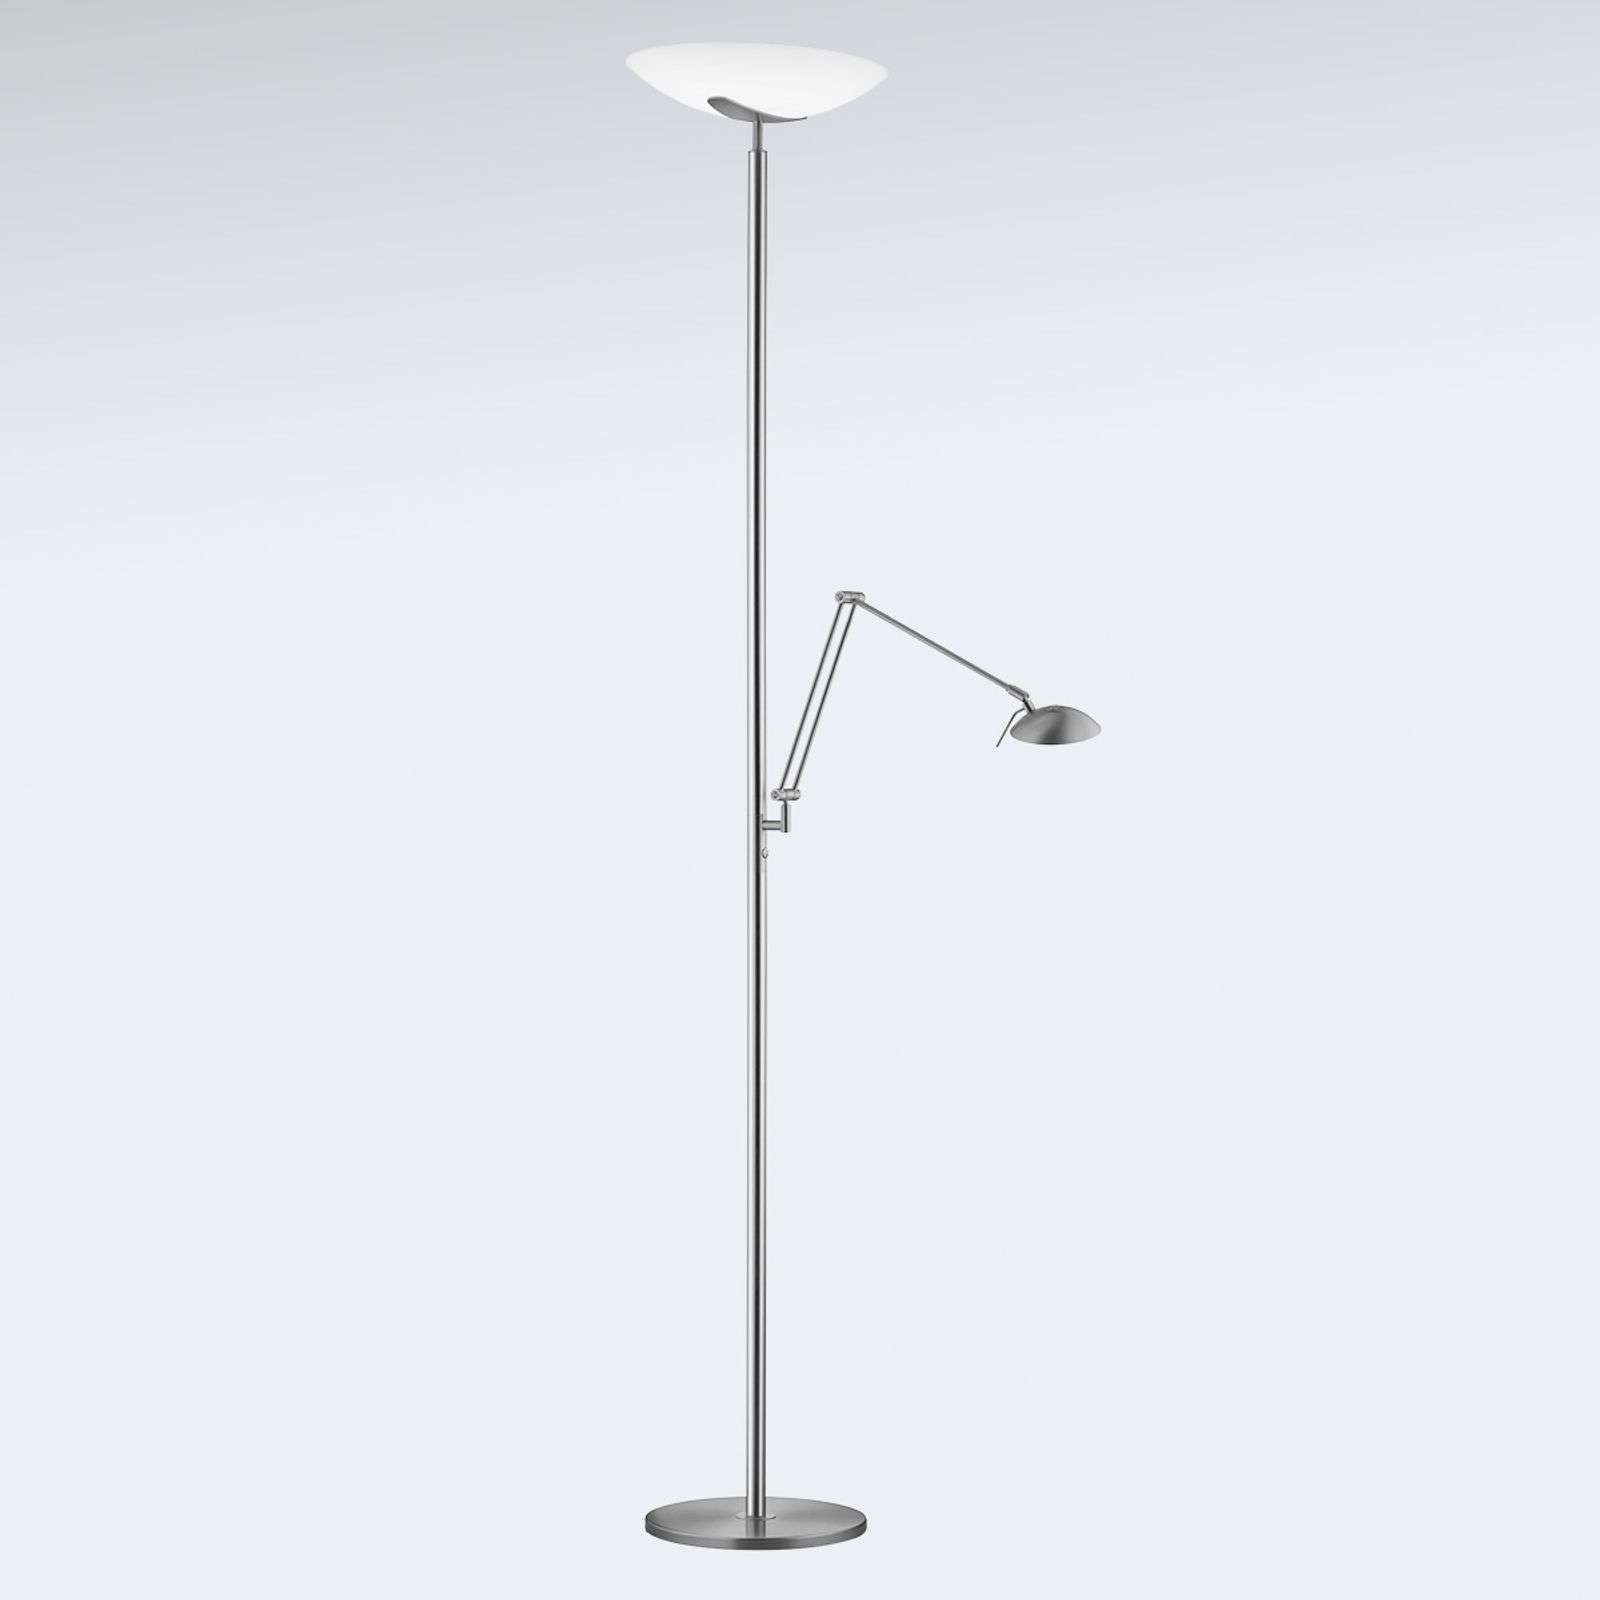 LED uplighter Lya met leeslamp in nikkel-chroom